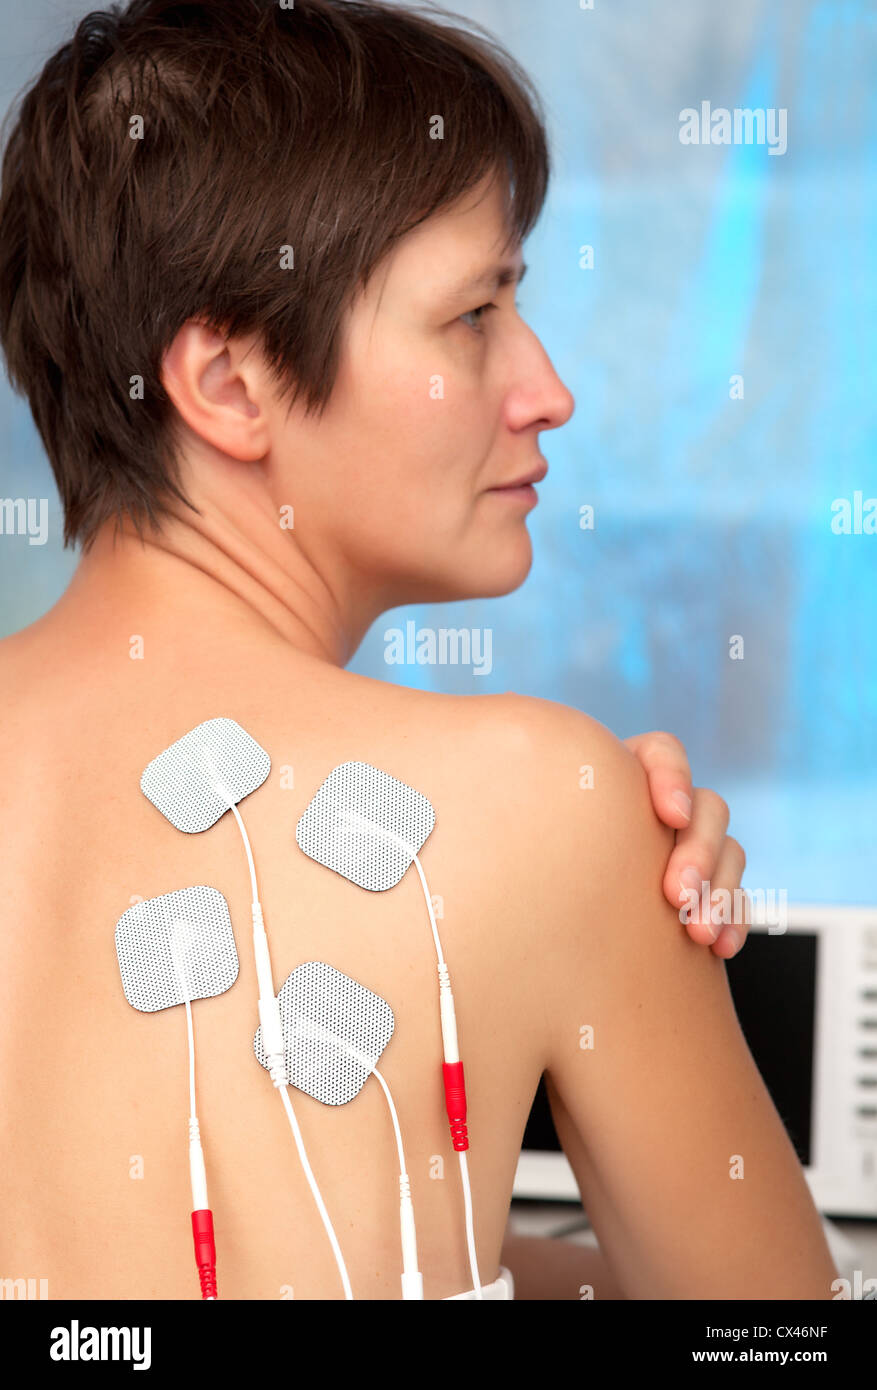 electrodes of tens device on the woman's back, tens therapy, nerve stimulation - Stock Image